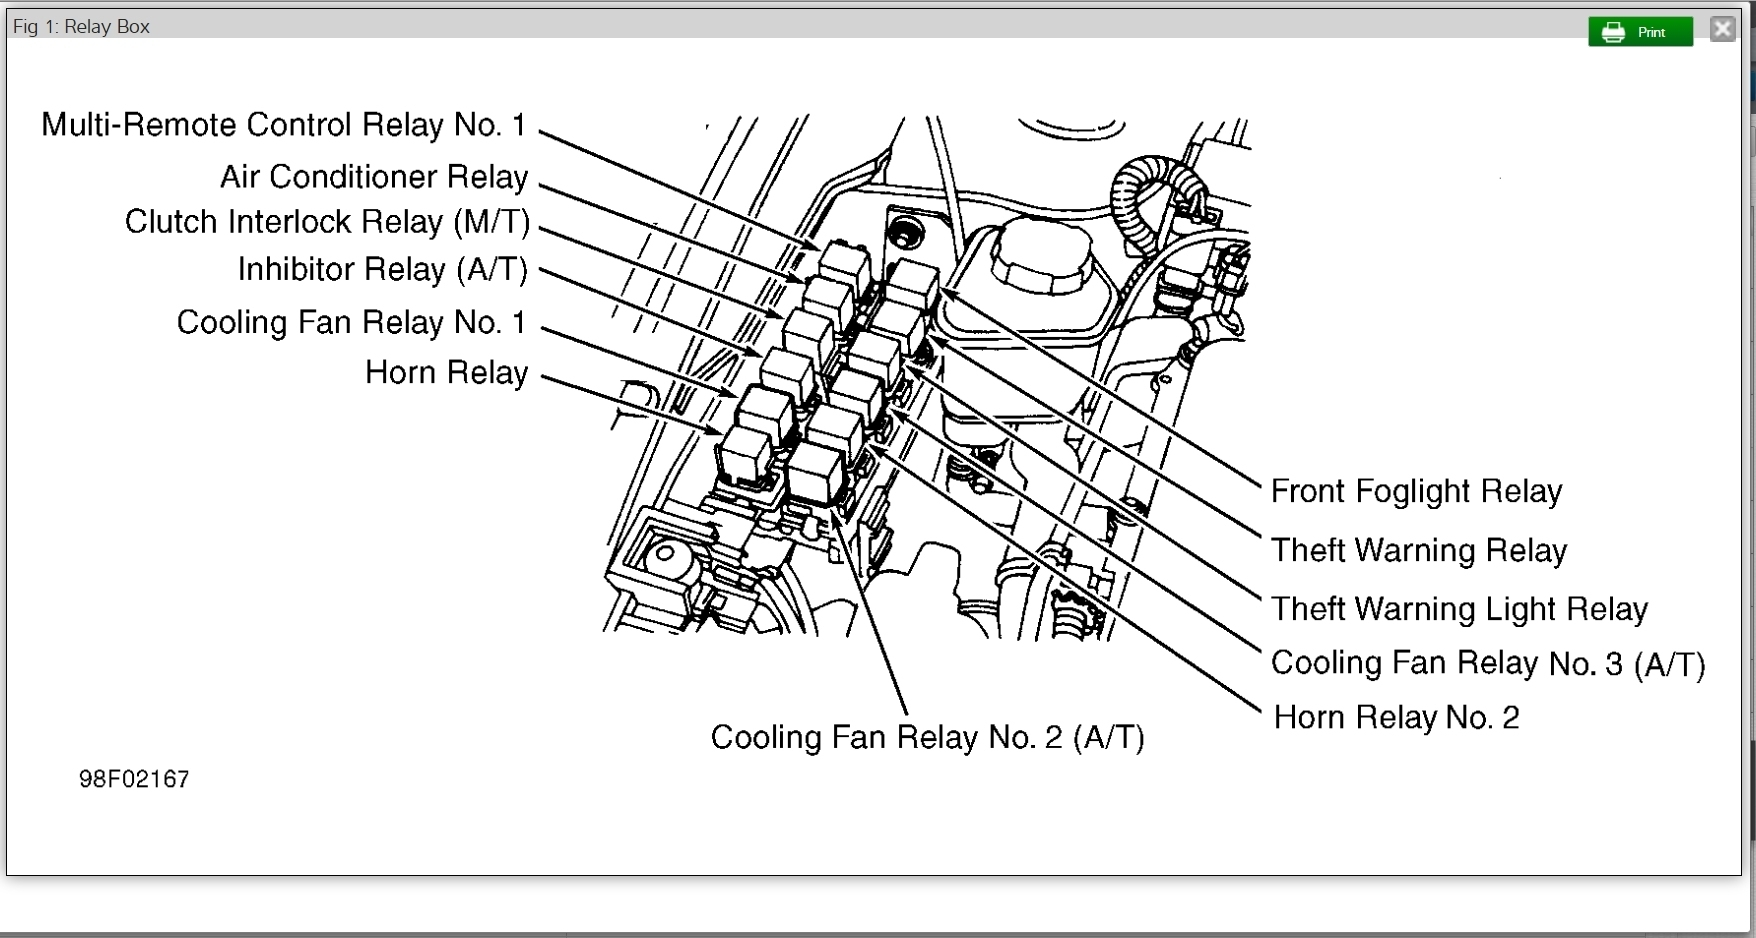 2004 S430 Fuse Box Diagram 1995 Nissan Maxima Simple Guide About Wiring 1996 Pathfinder Starter Source 95